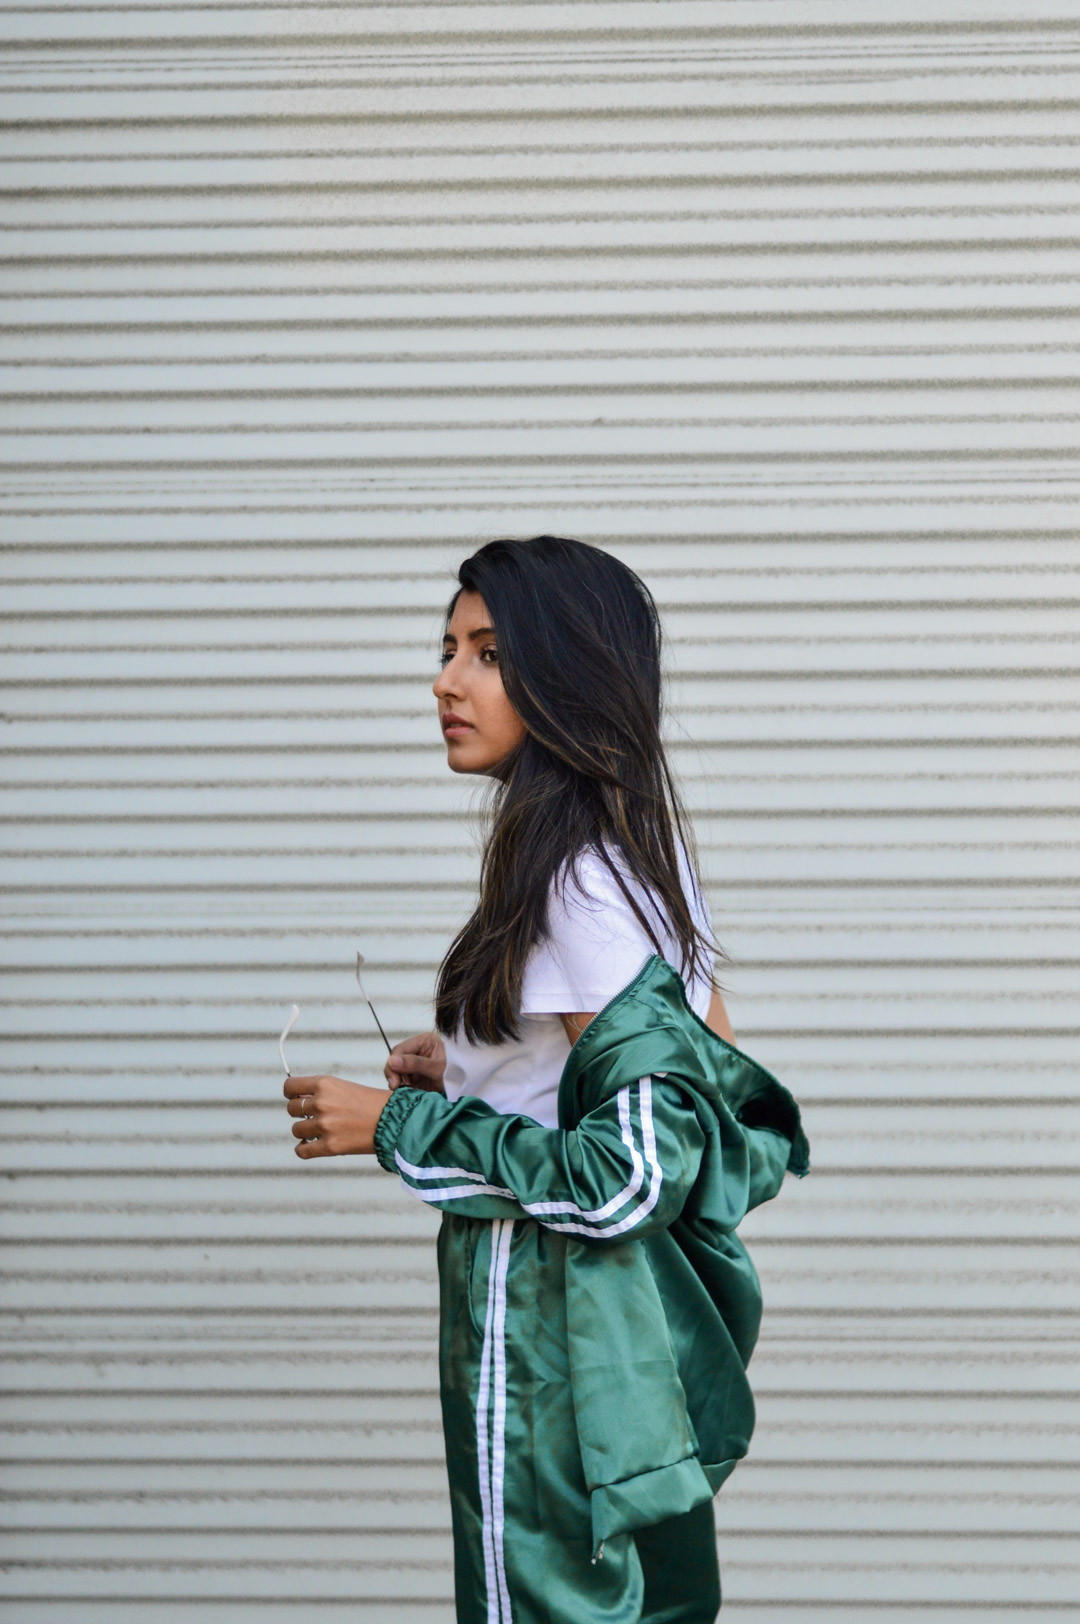 tracksuit-satin-green-sporty-chic-blogger-outfit-fall 2